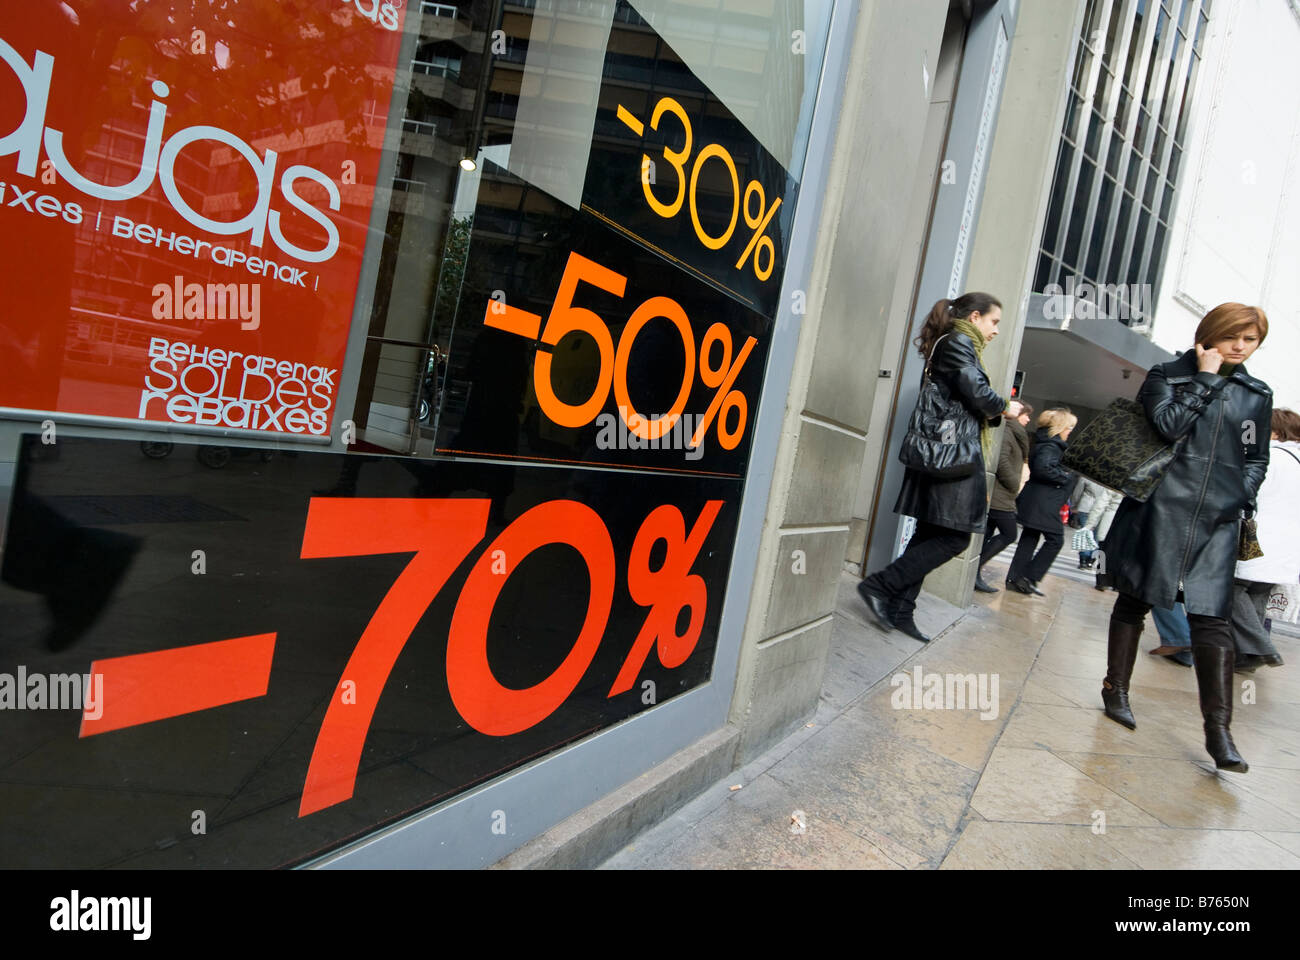 Shop window showing discount on discount to Spanish shoppers during winter sales in Valencia city Spain - Stock Image